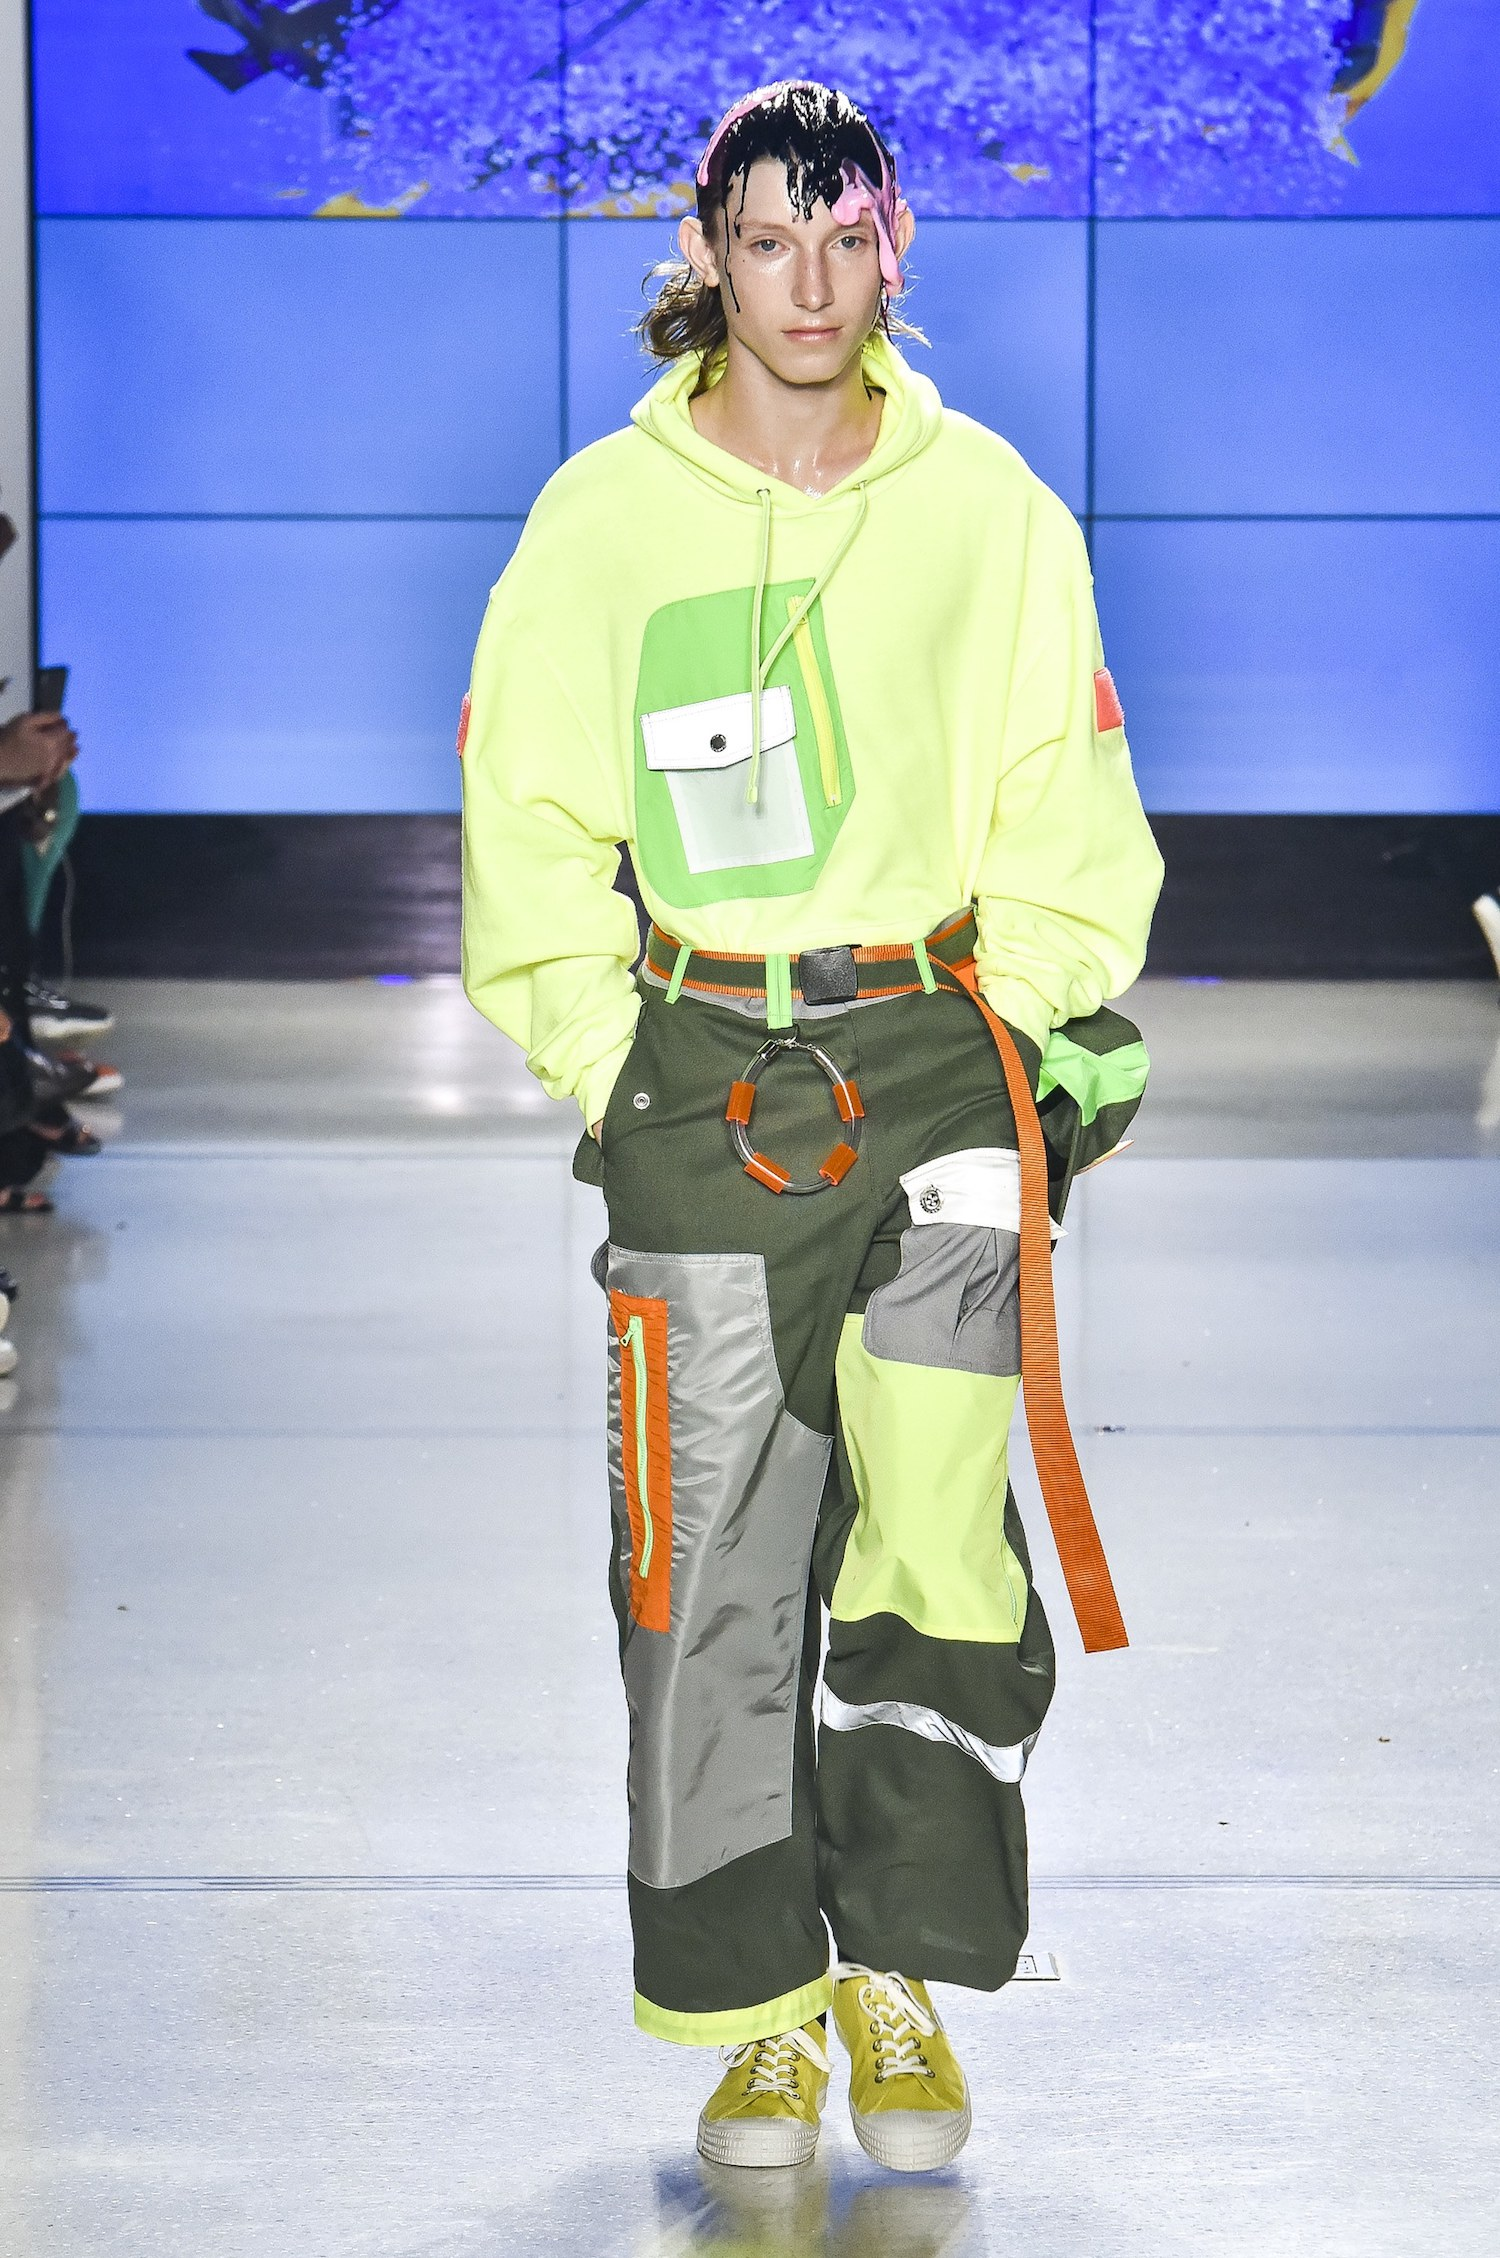 NYFWM: Landlord Spring/Summer 2019 Collection